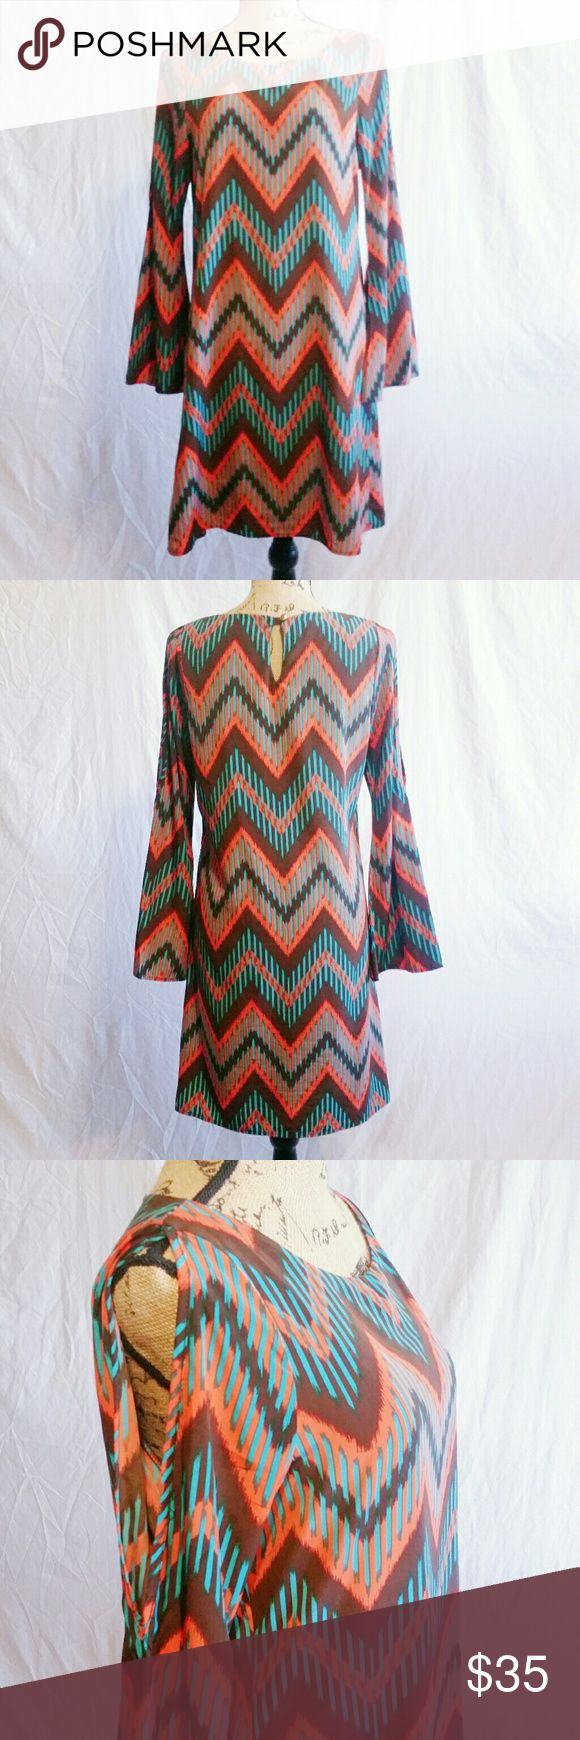 Mint & Coral Chevron Print Dress - Size M (NWOT) Make me an offer! Be noticed in this vibrant colored chevron print Peach Love Cream California scoop neck midi dress. Keyhole button at top on back & sexy sleeve cut-outs that show off those beautiful shoulders! New without Tags. Size Medium. 100% polyester. Hand wash cold & hand to dry. Dresses Midi